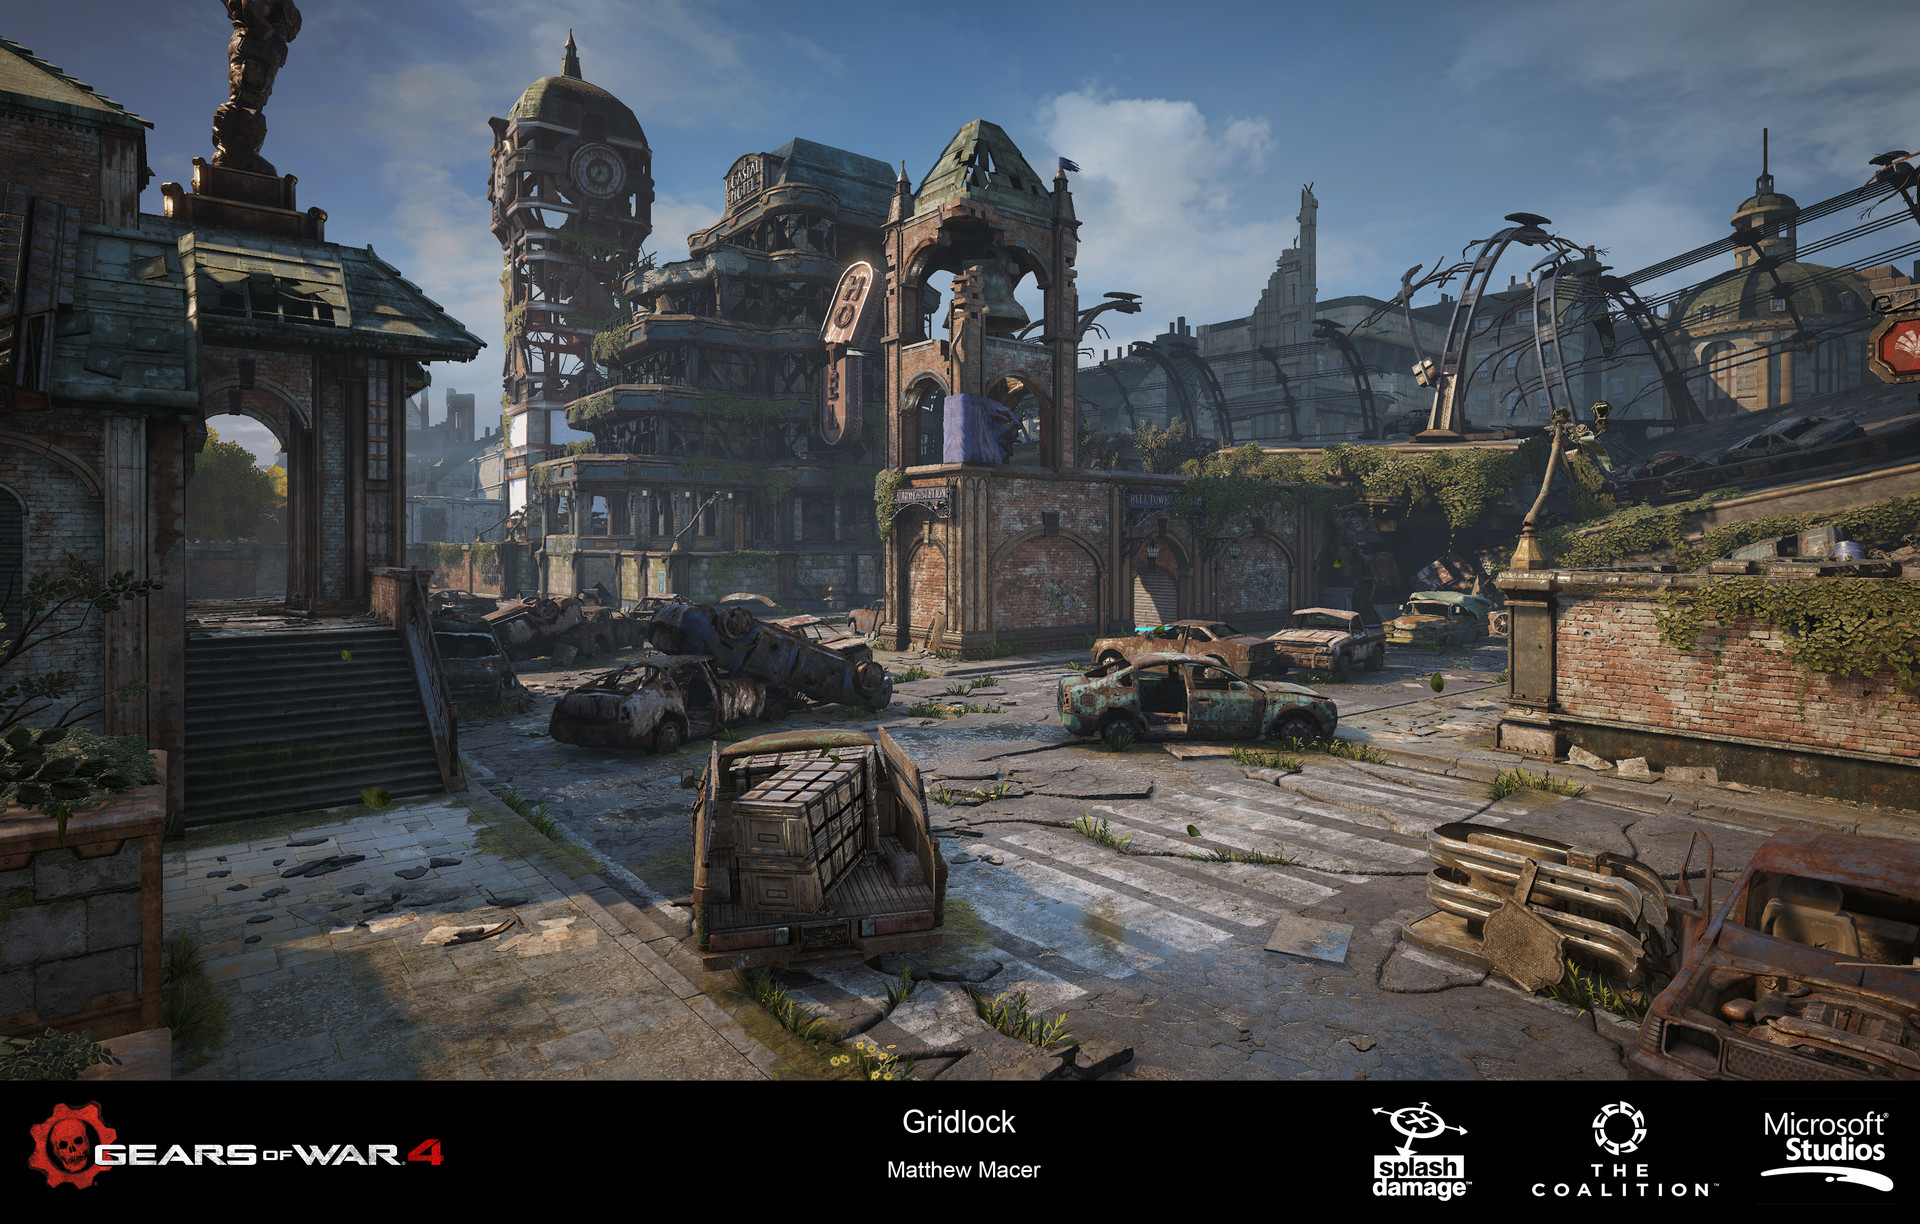 ArtStation - Gears of War 4 - Gridlock MP Map, Matthew Macer on fallout 1 maps, call of duty mw2 maps, crackdown 1 maps, halo 1 maps, bioshock 1 maps, cod black ops 1 maps, grand theft auto 1 maps, resident evil 1 maps, dead space 1 maps, borderlands 1 maps, gears of war judgement maps, call of duty 4 maps, unreal 1 maps, modern warfare 1 maps, star wars battlefront 1 maps, gears of war 4 maps, devil may cry 1 maps, gears of war 2 maps, battlefield 1 maps, portal 1 maps,